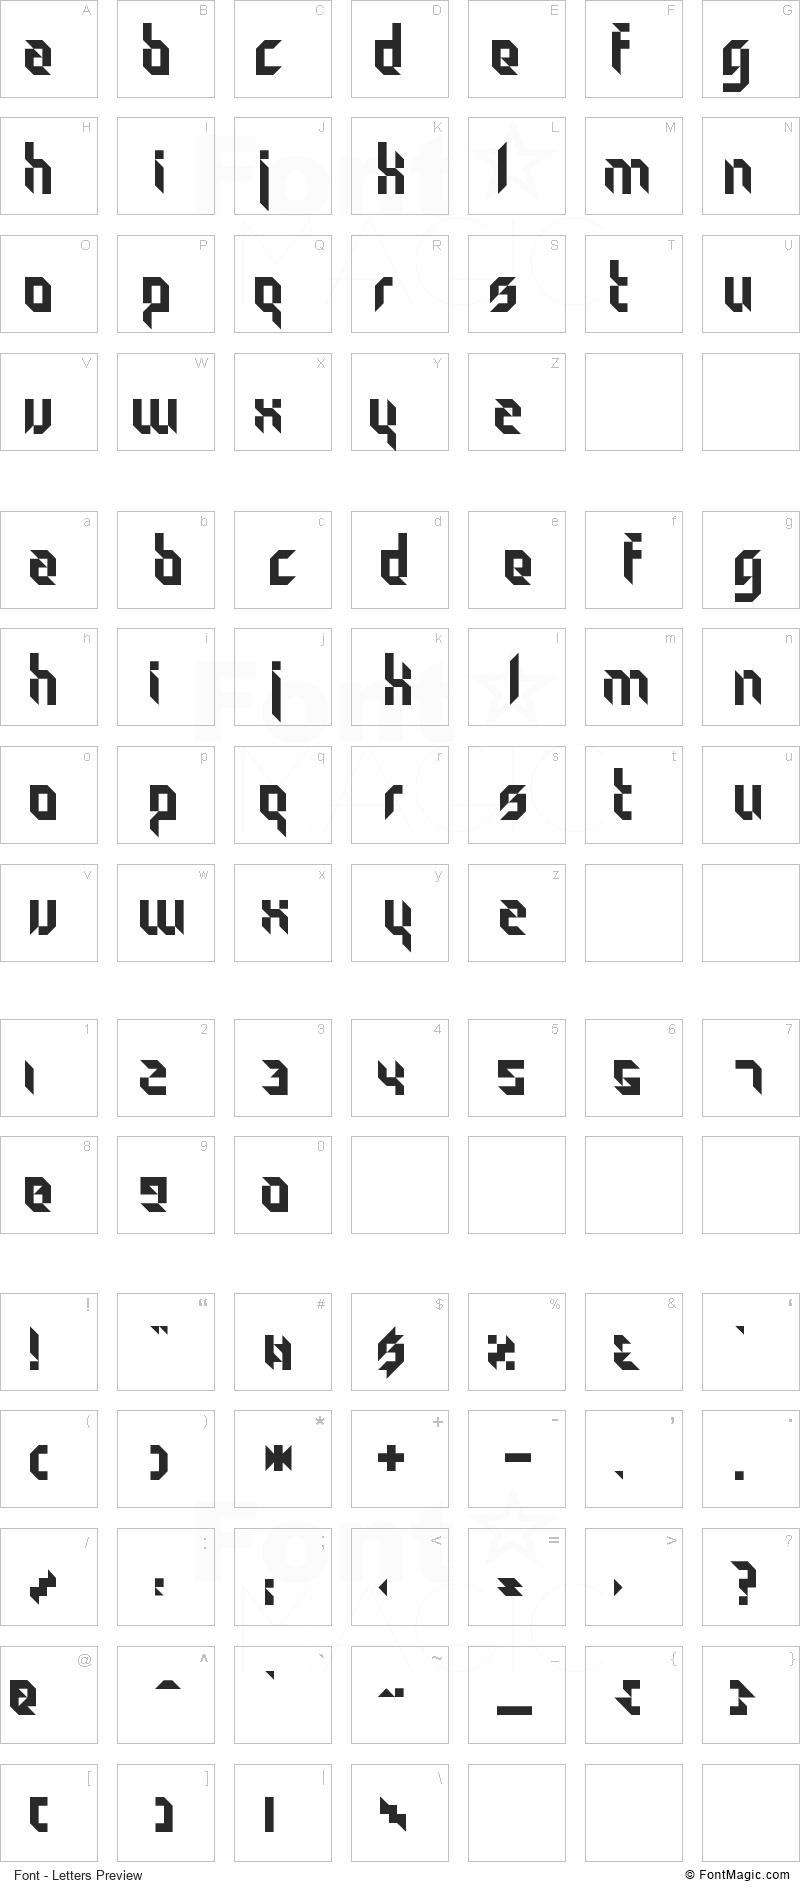 Particulator Font - All Latters Preview Chart